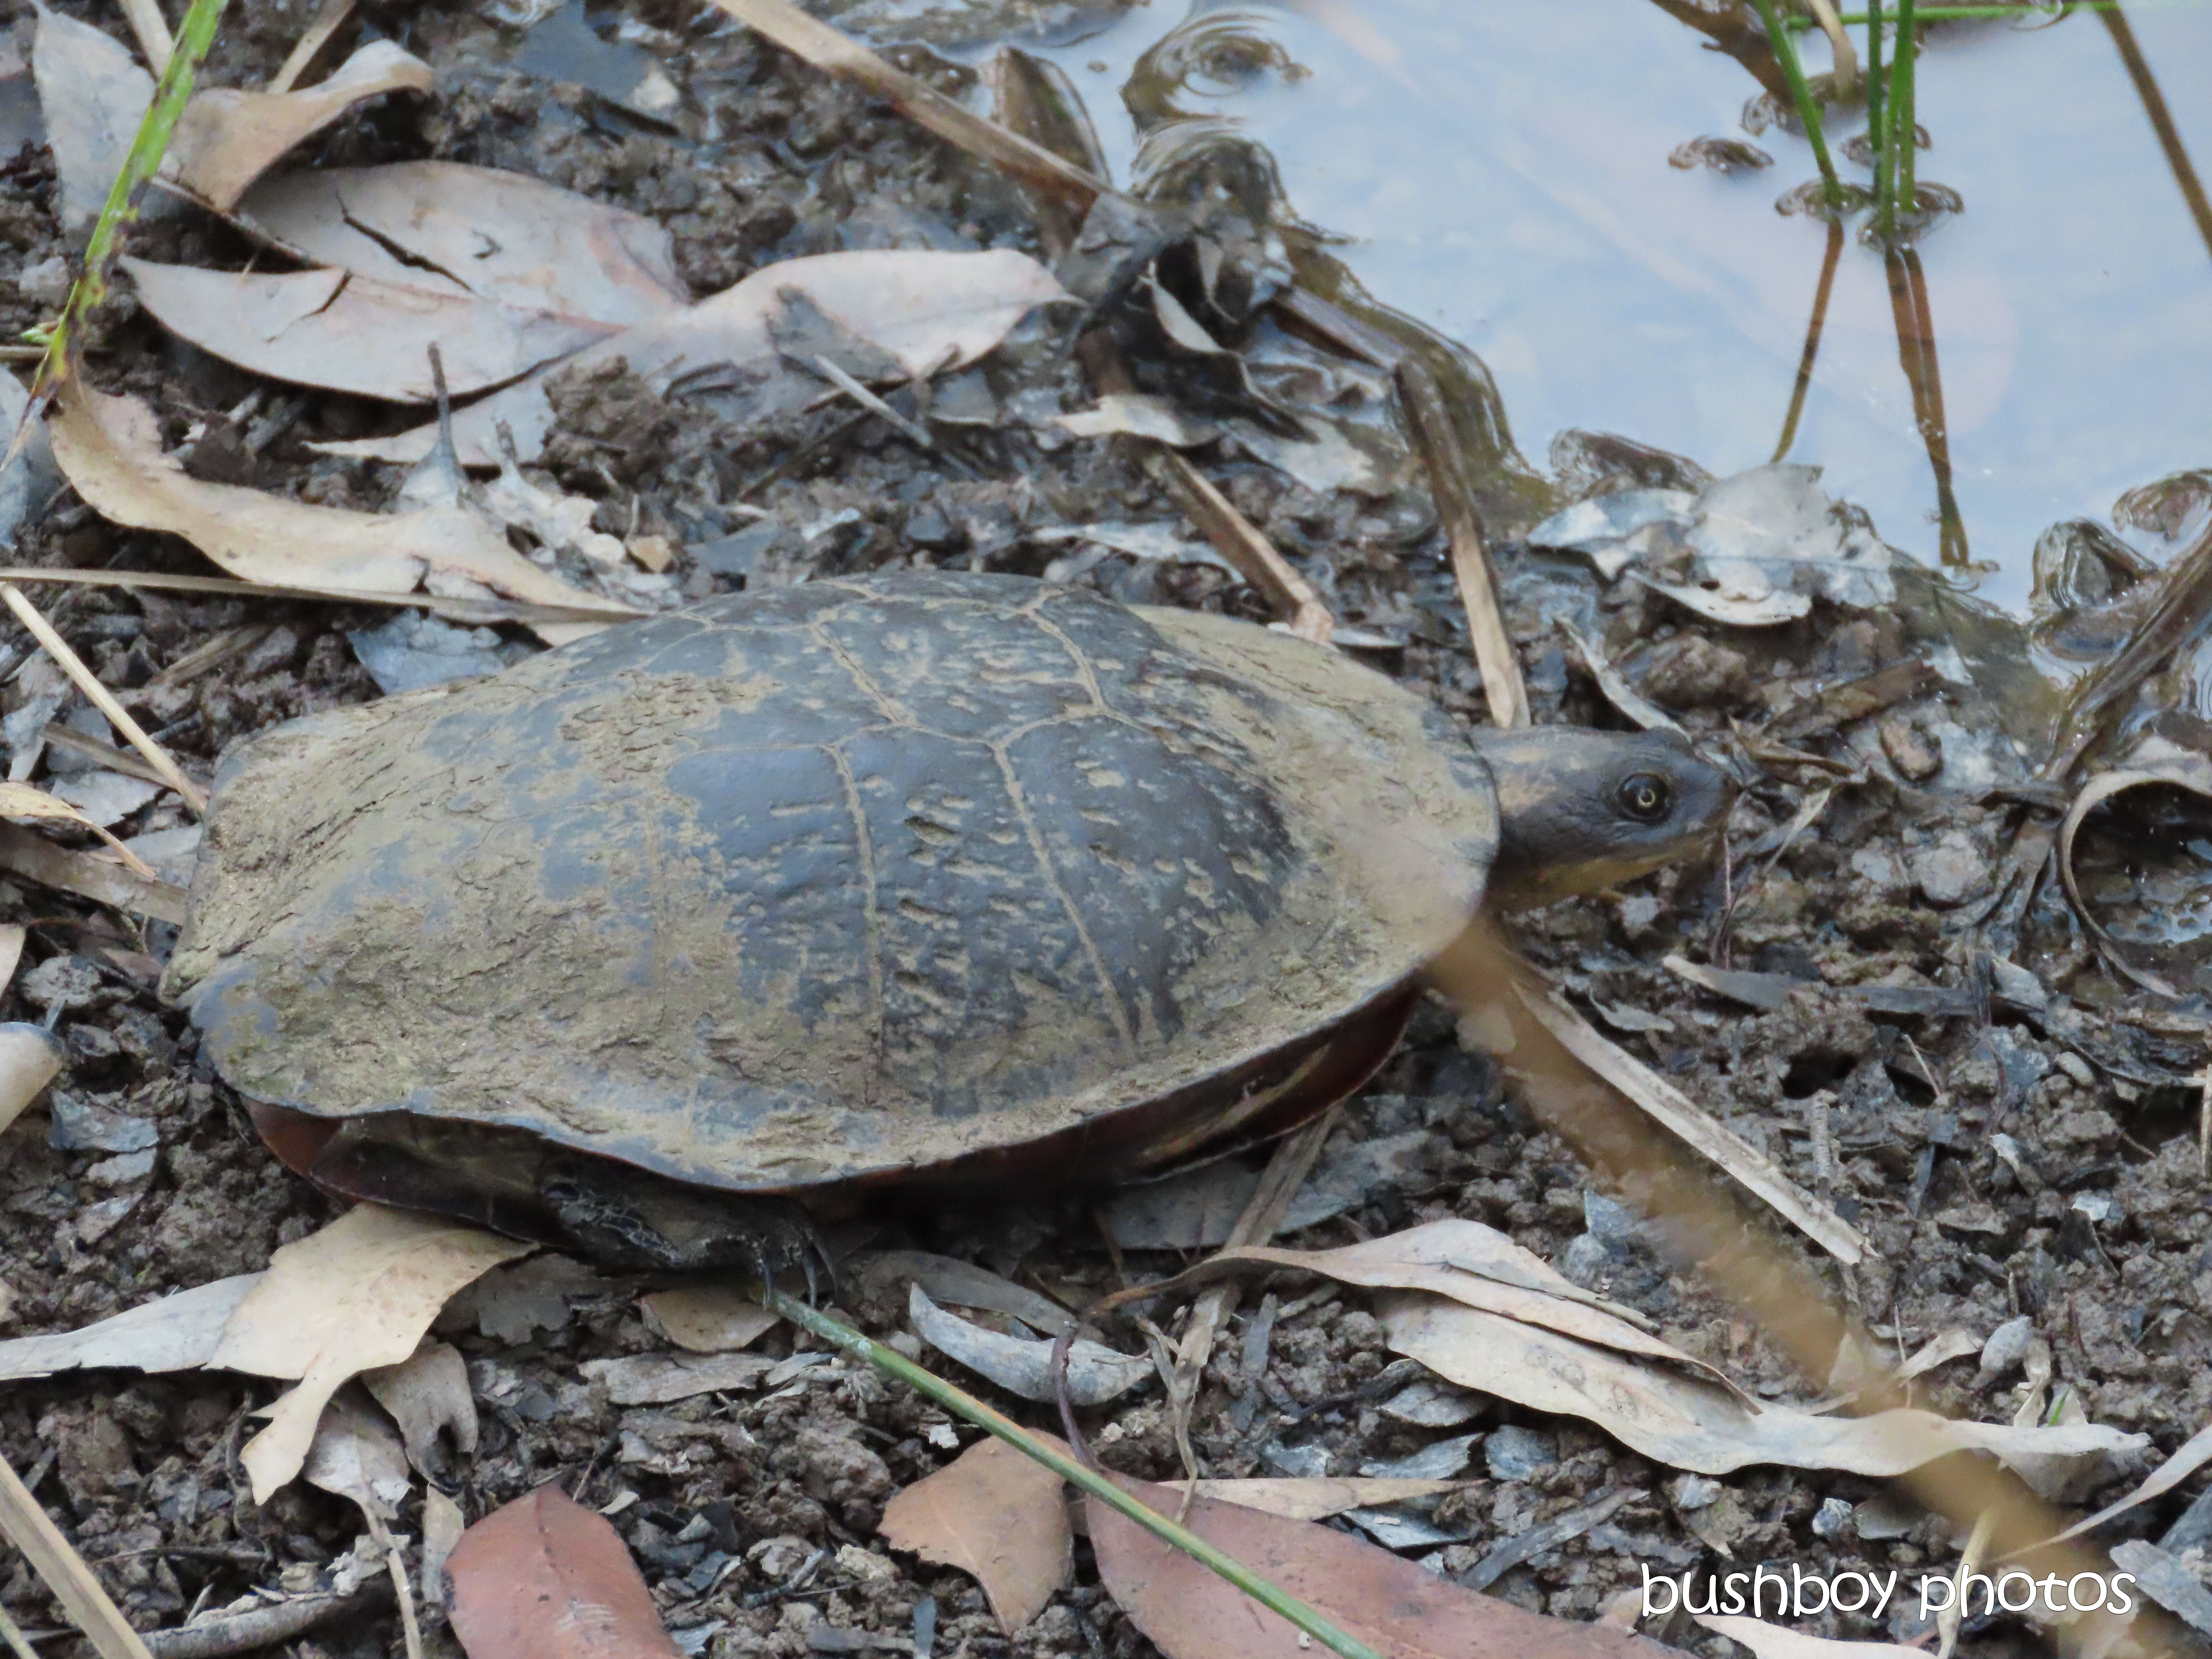 long-necked tortoise_rescue_emerge_named_home_jackadgery_oct 2019